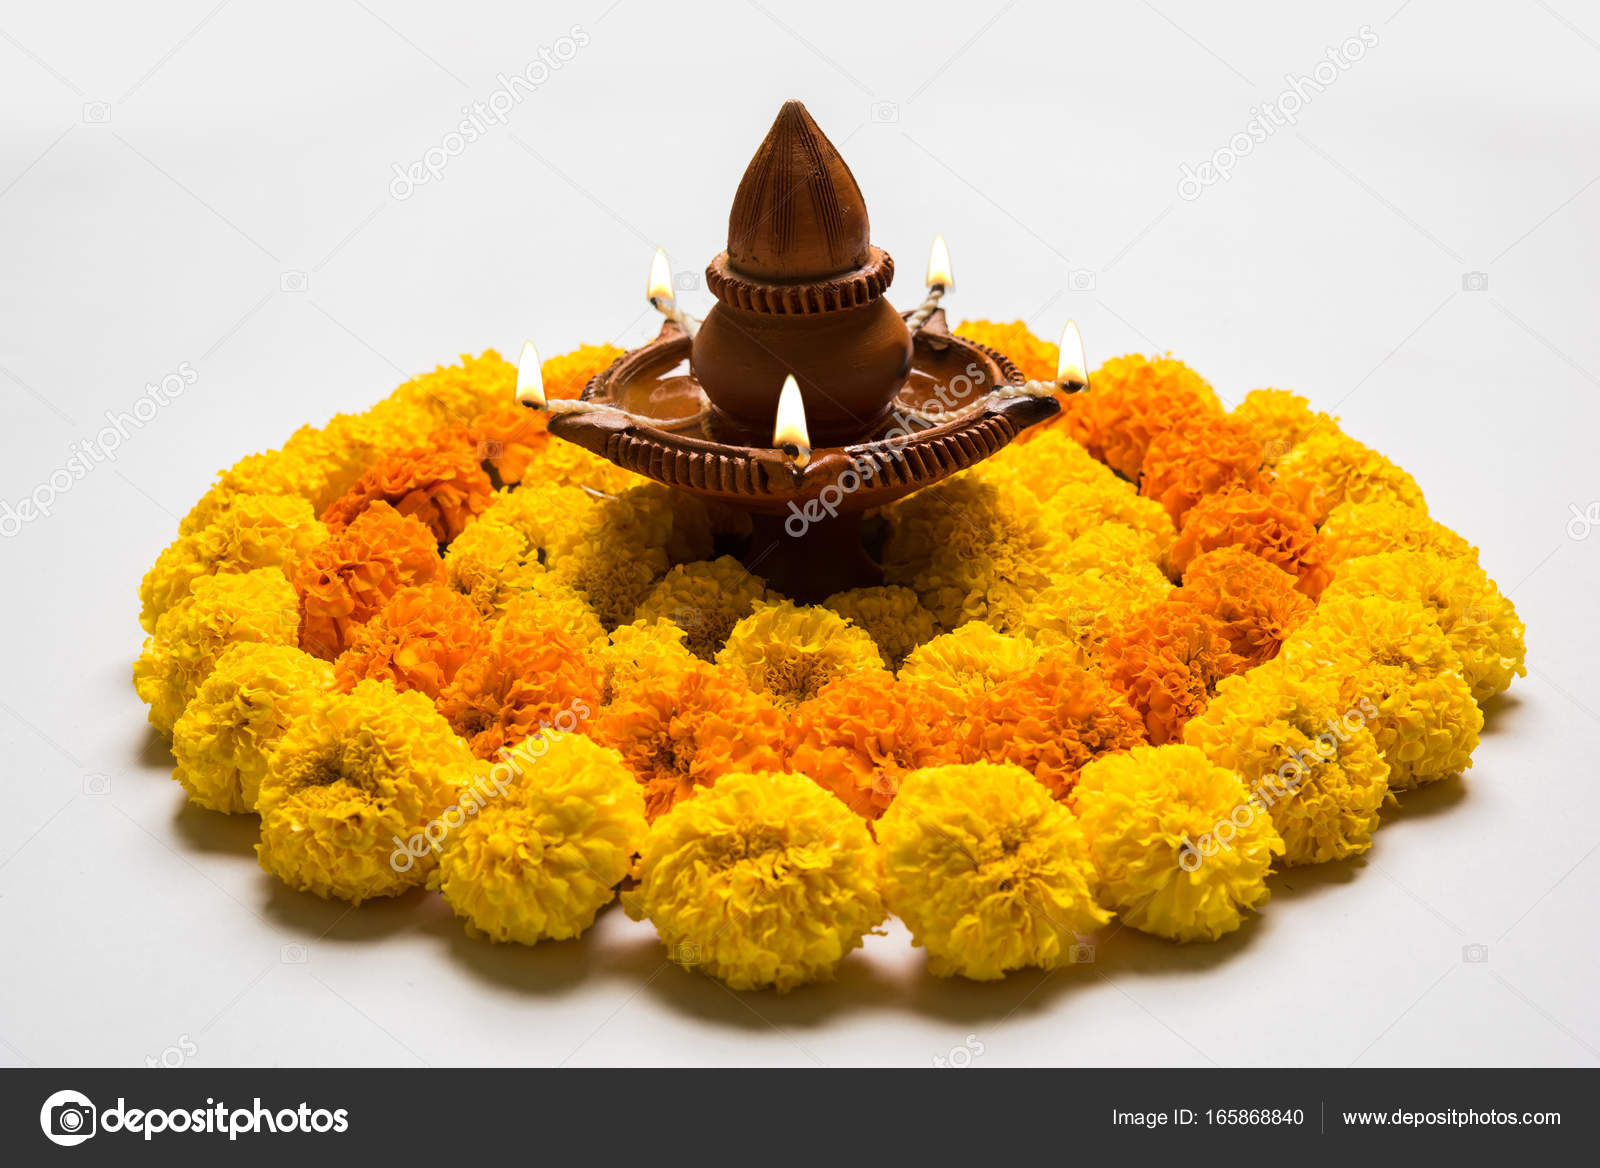 Clipart Rangoli Flower Rangoli For Diwali Or Pongal Or Onam Made Using Marigold Or Zendu Flowers And Red Rose Petals Over White Background With Diwali Diya In The Middle Selective Focus